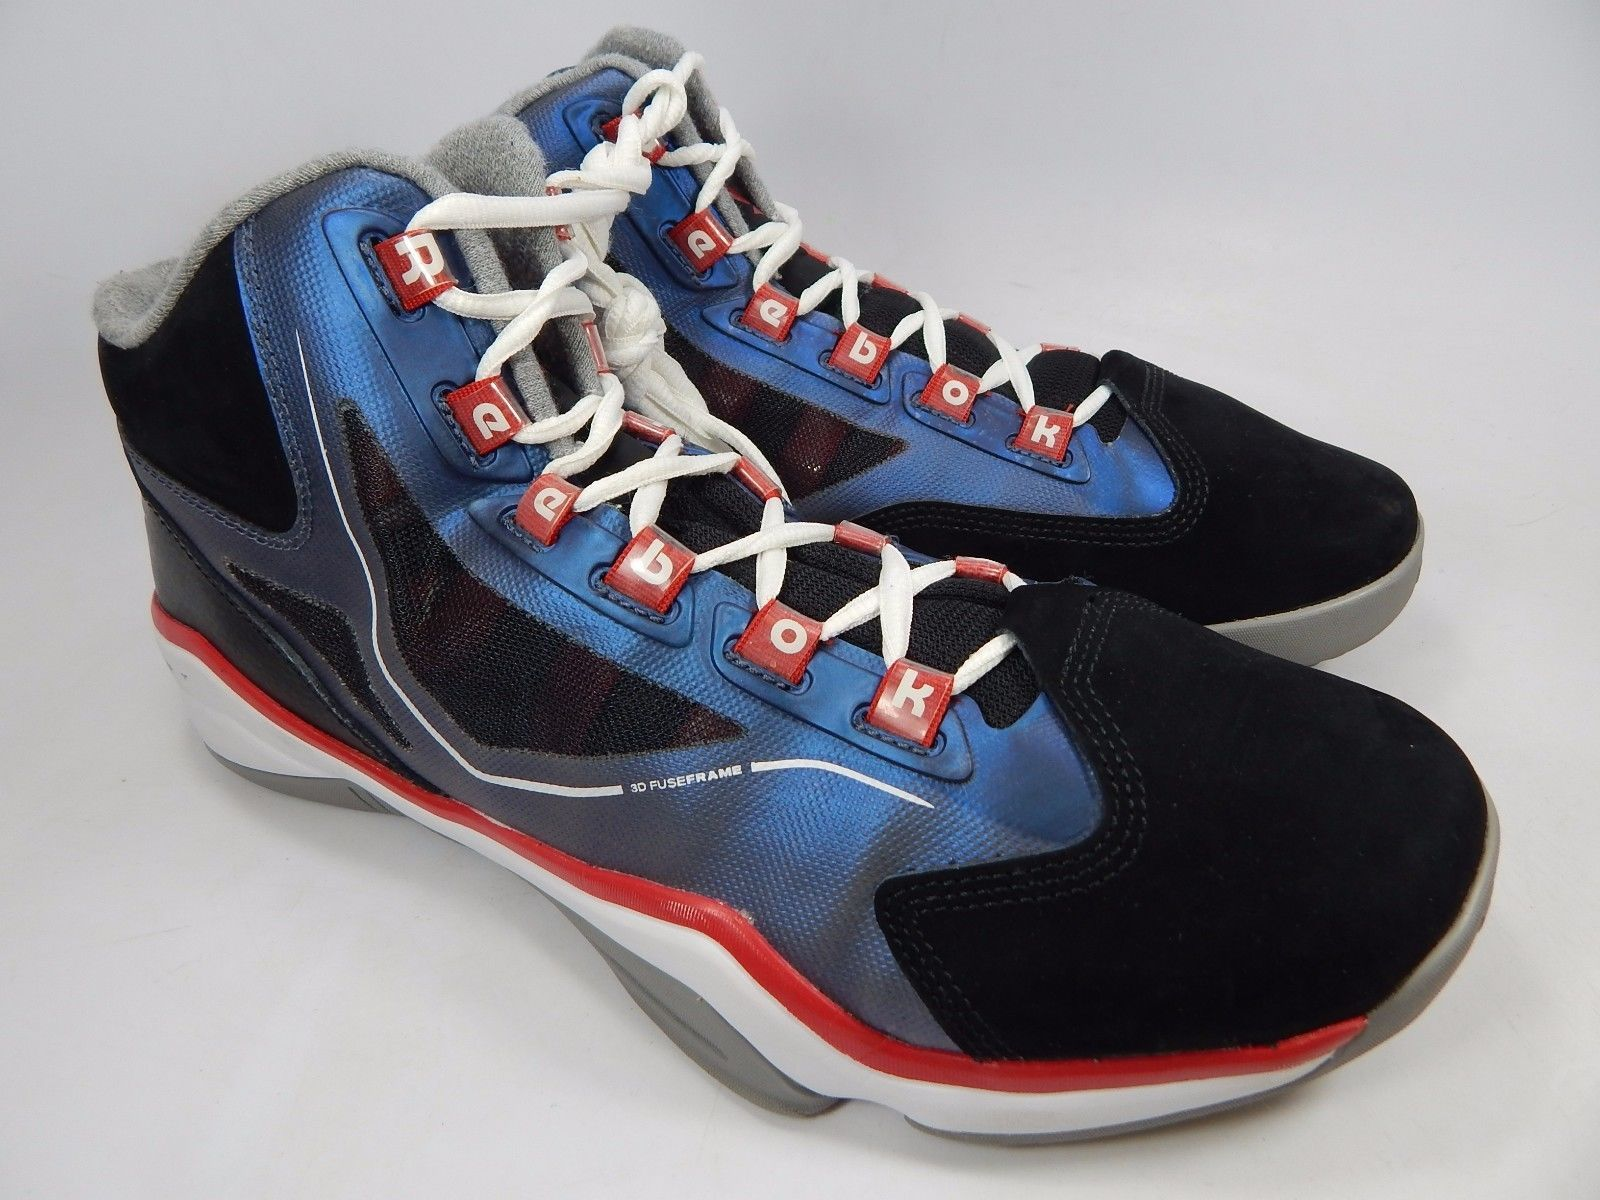 Reebok Q96 CrossExamine Men's Basketball Shoes Size US 11 M (D) EU 44.5 v61743